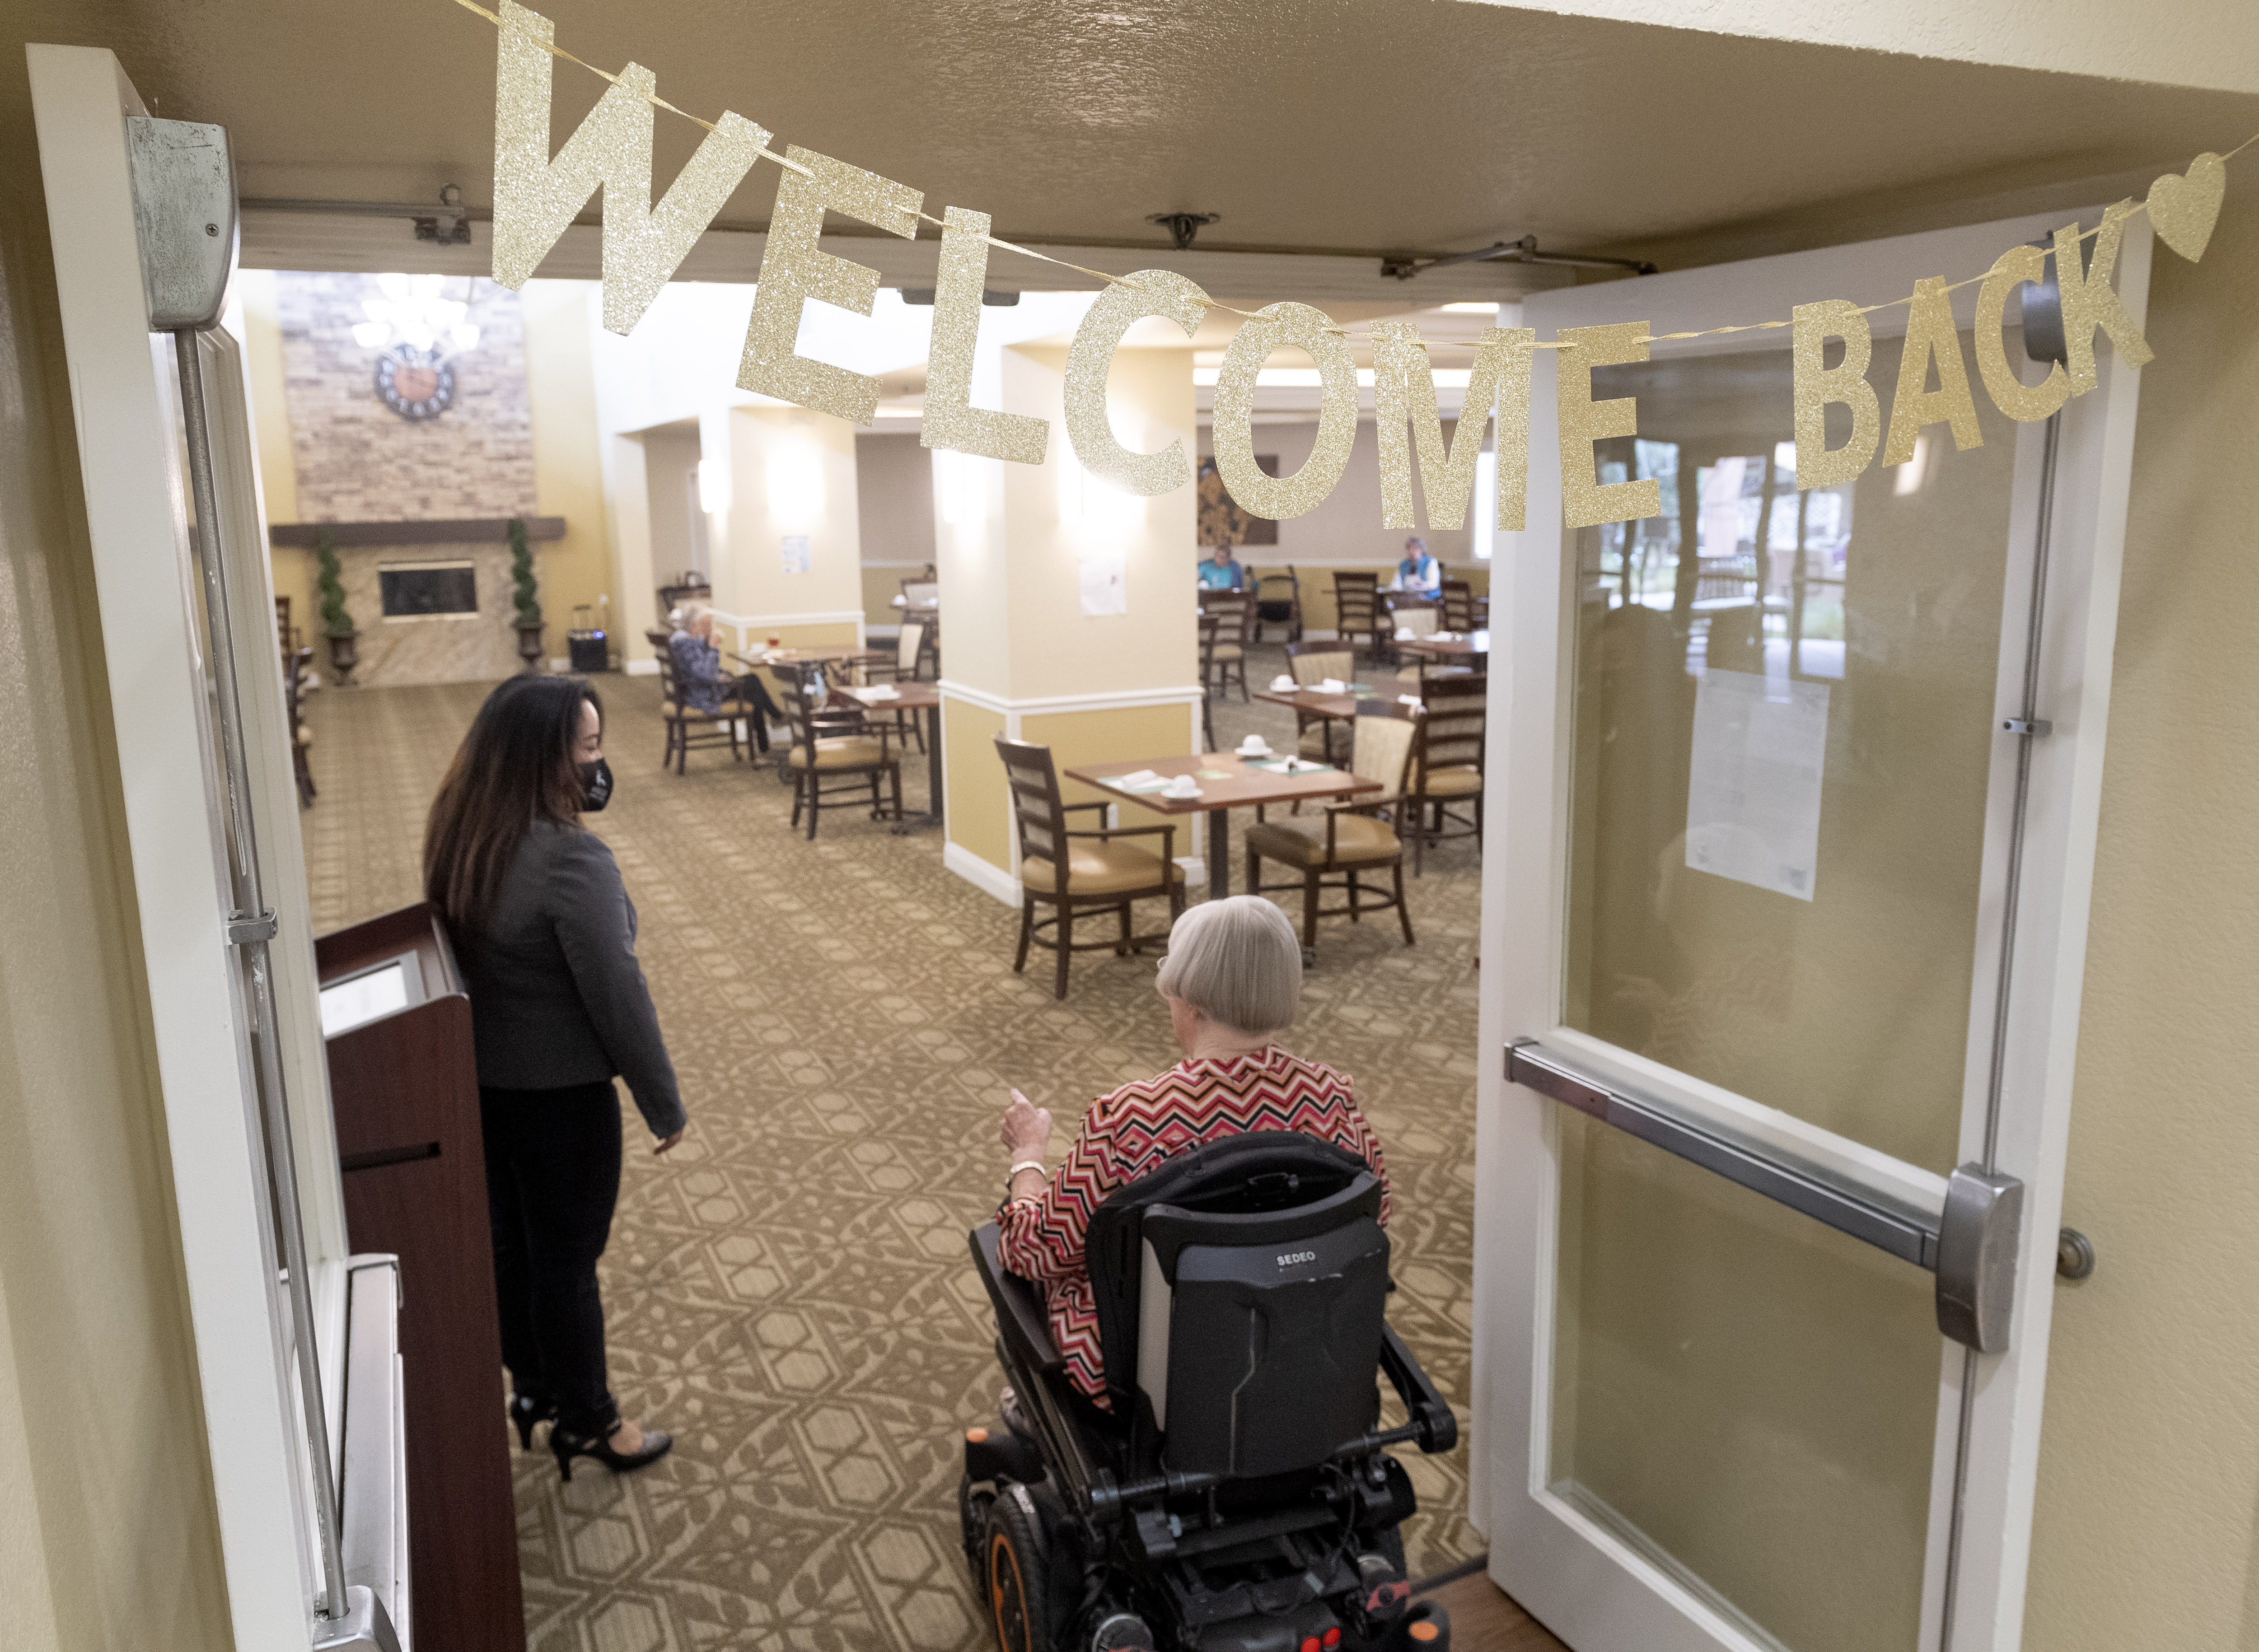 Executive Director Patricia Gustin greets residents entering the dining room at a nursing home in Anaheim, California, on March 8.